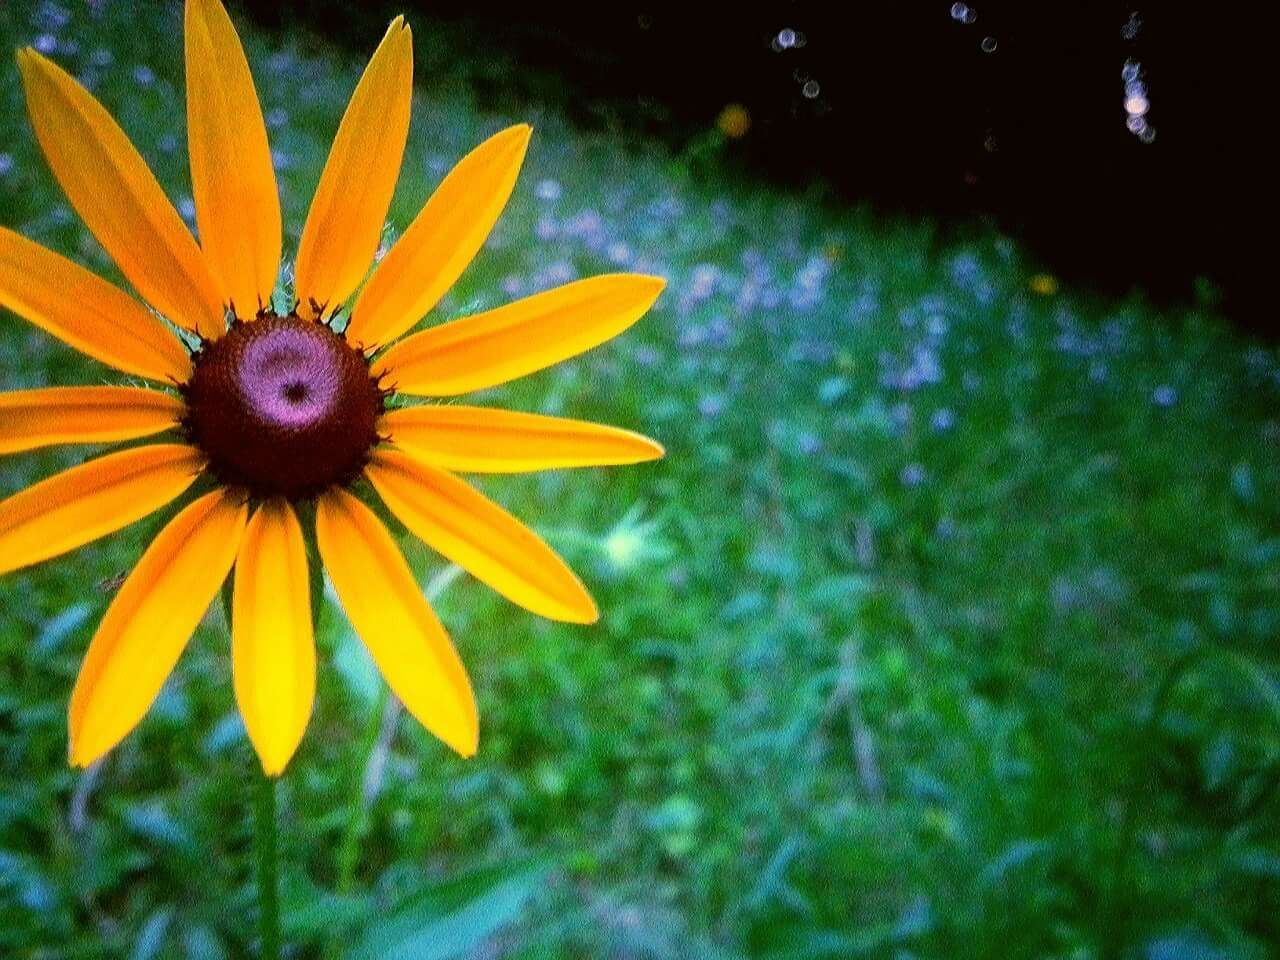 flower, petal, fragility, beauty in nature, growth, freshness, flower head, nature, blooming, plant, day, outdoors, yellow, no people, black-eyed susan, close-up